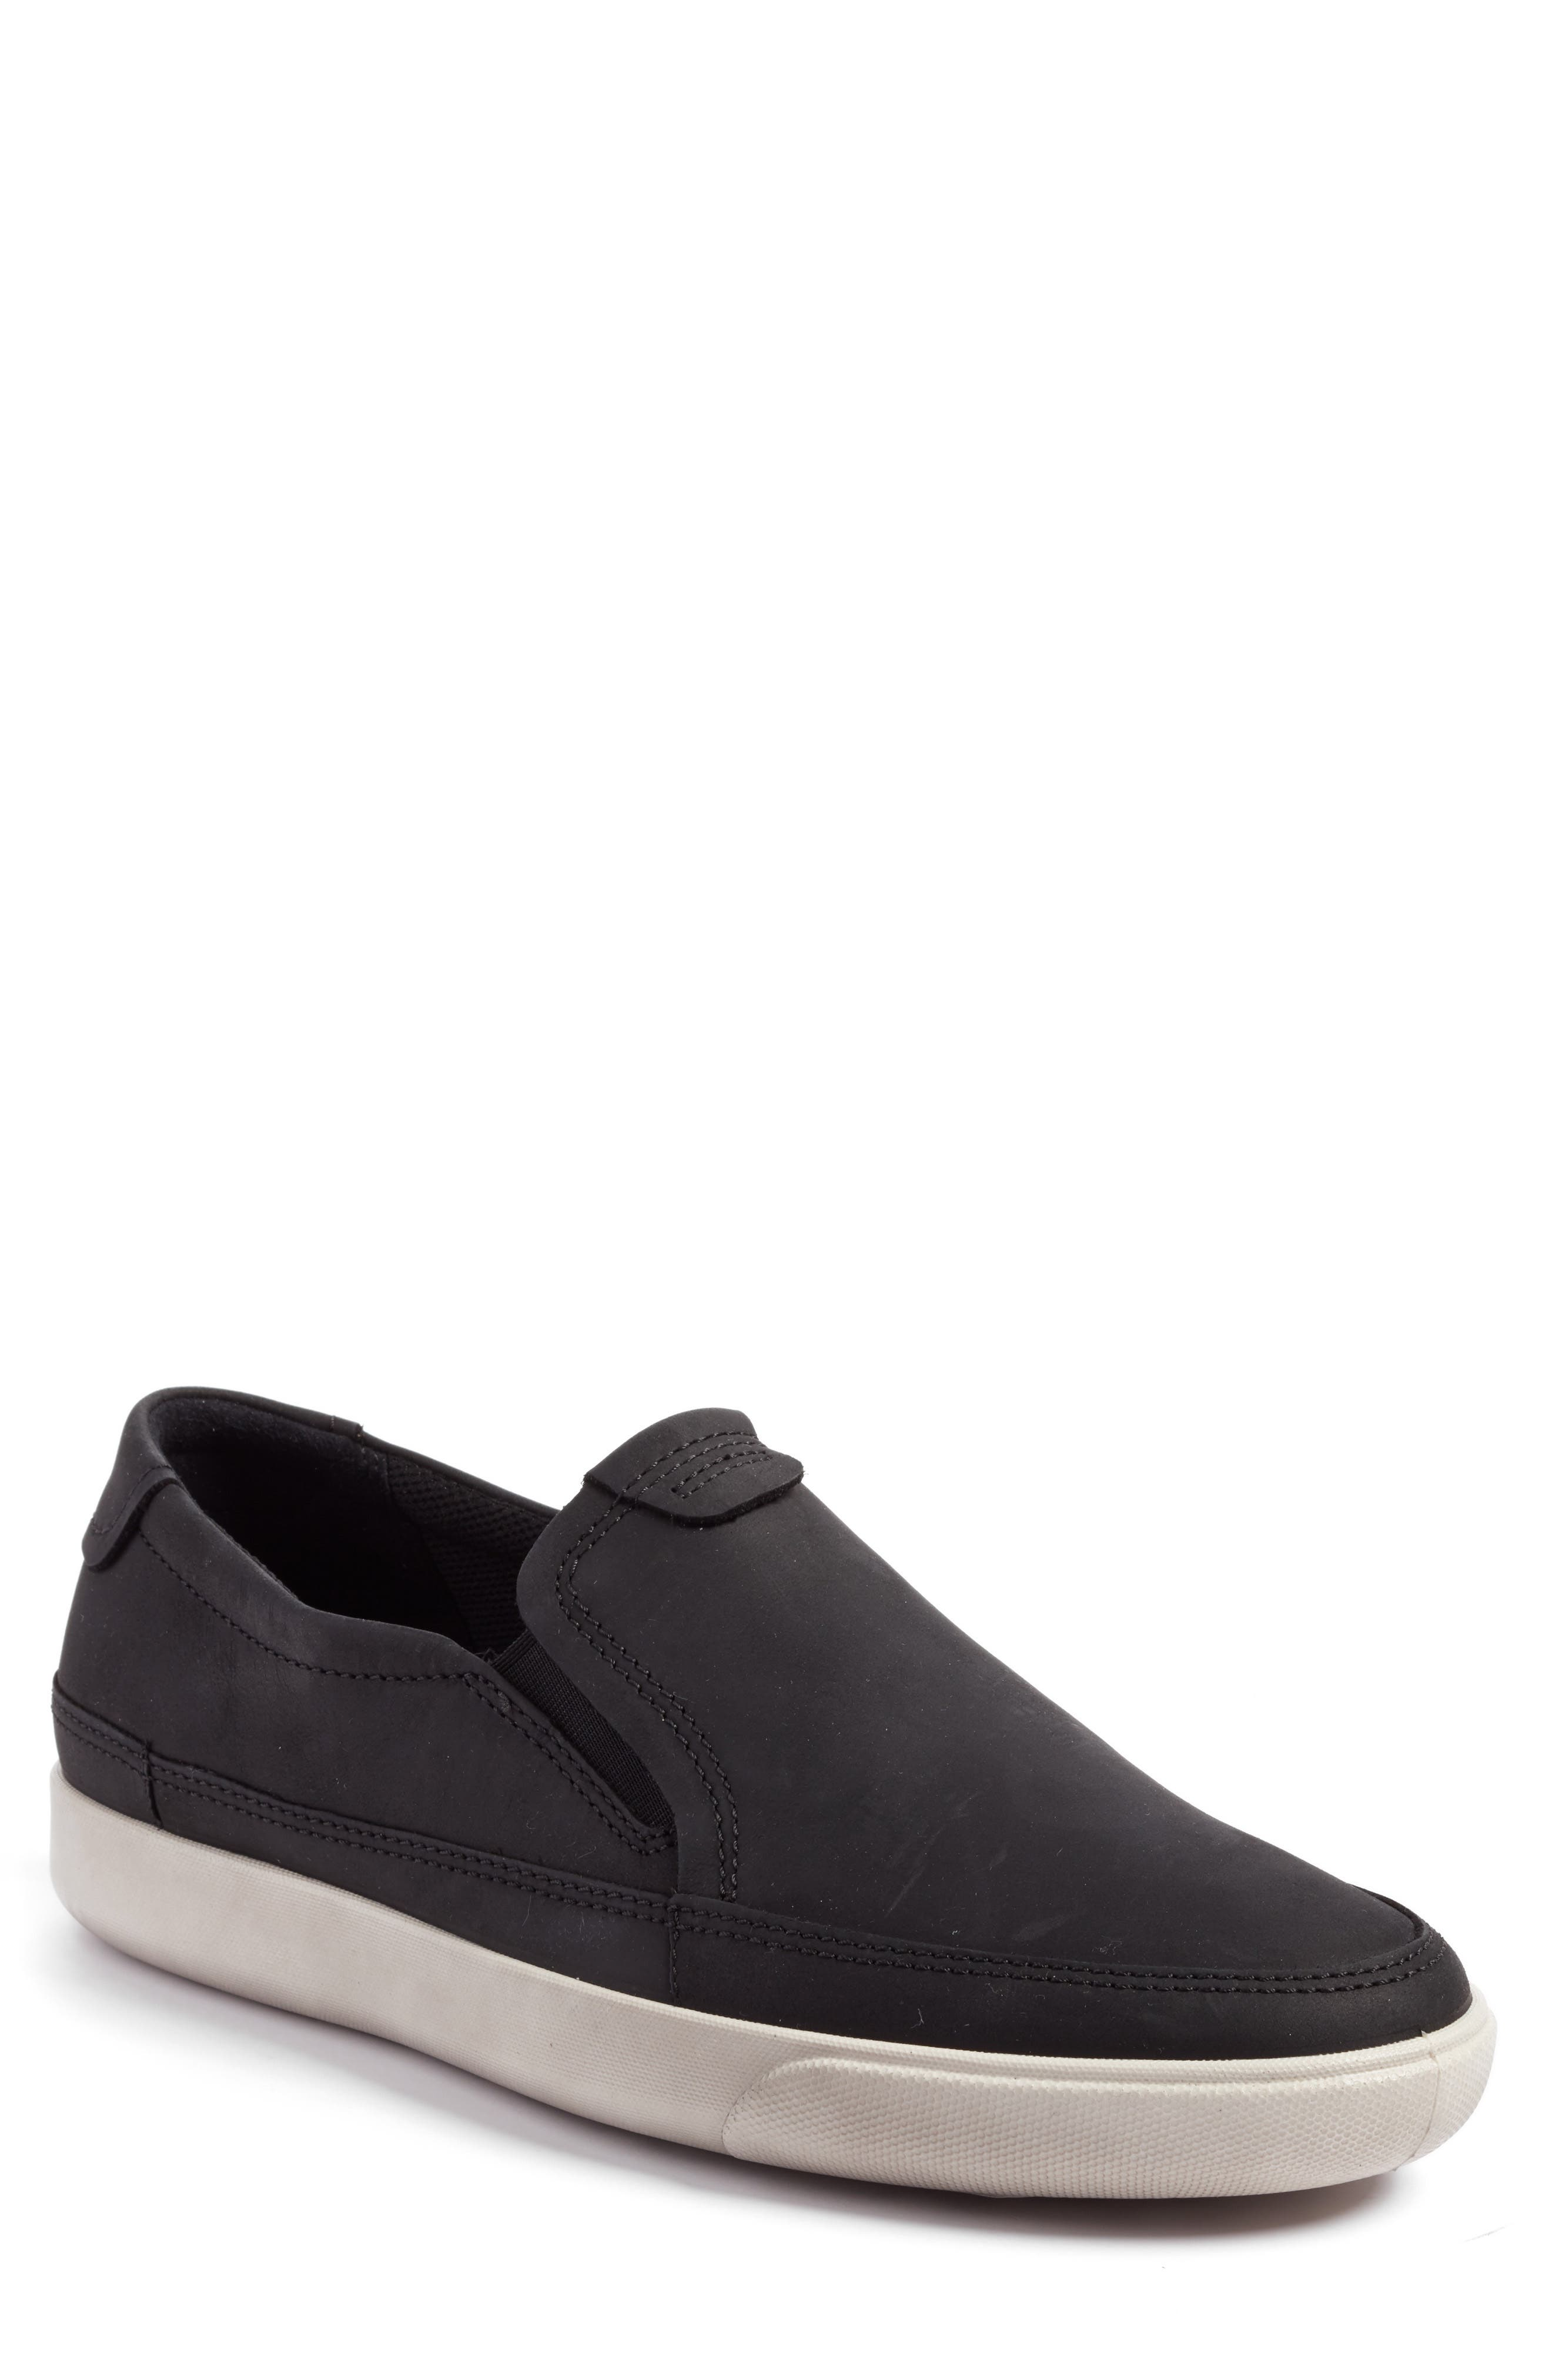 ECCO 'Gary' Slip-On, Main, color, 001